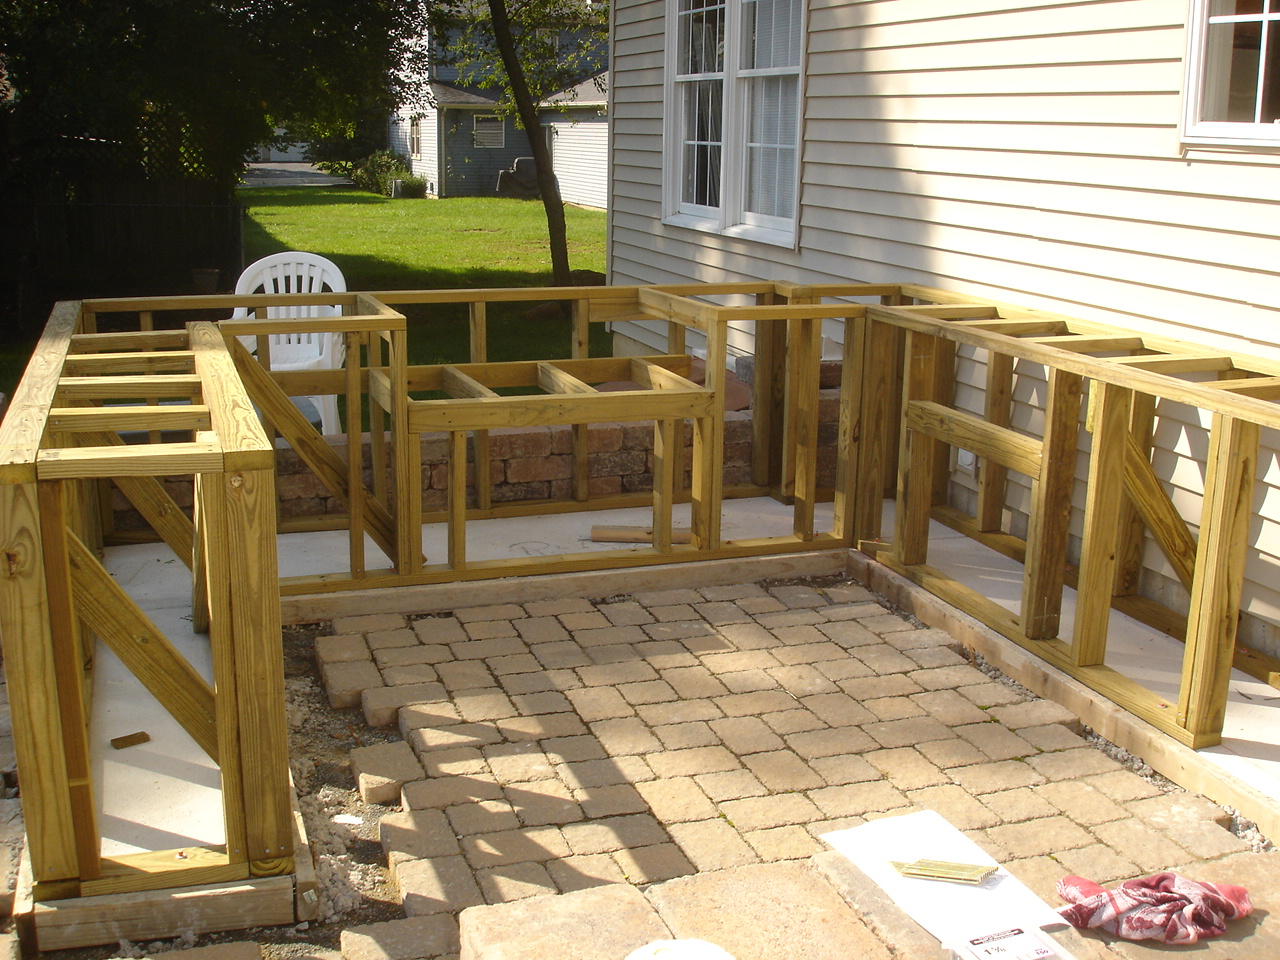 ... Nj Home Improvement Blog Outdoor Bar And Grill ... Part 24